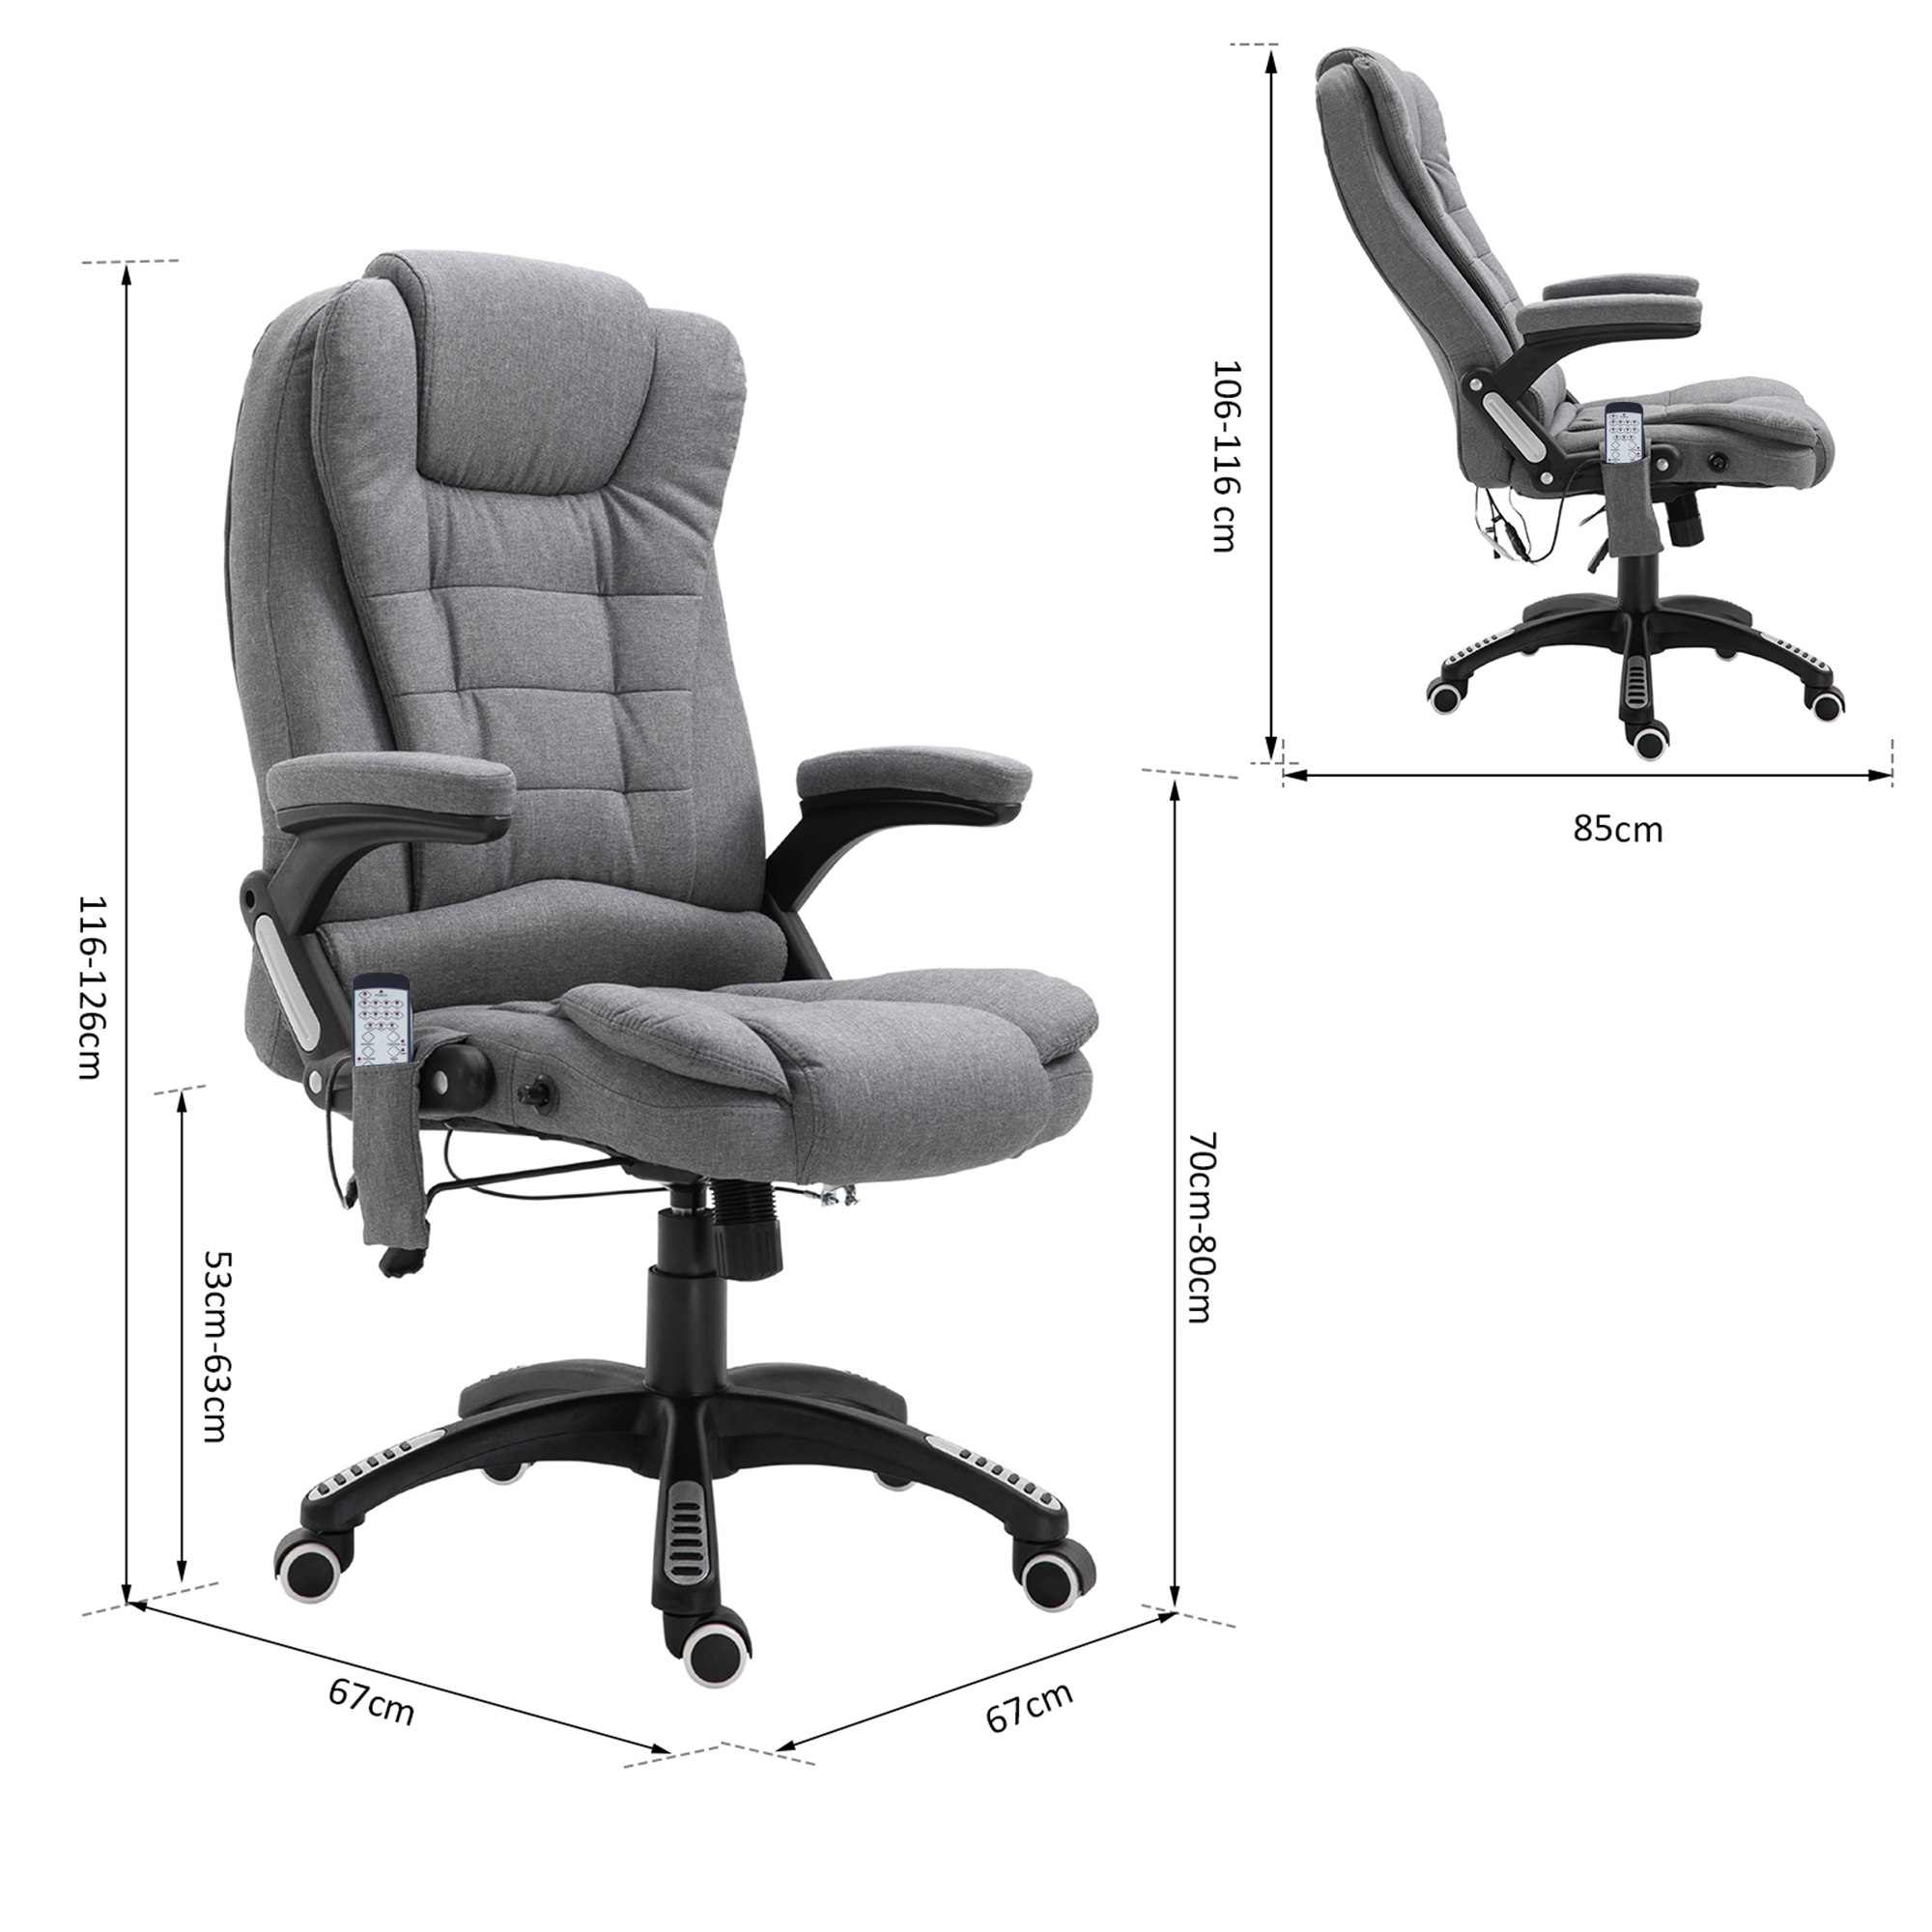 thumbnail 14 - Executive Reclining Chair 130°w/6 Heating Massage Points Relaxing Headrest